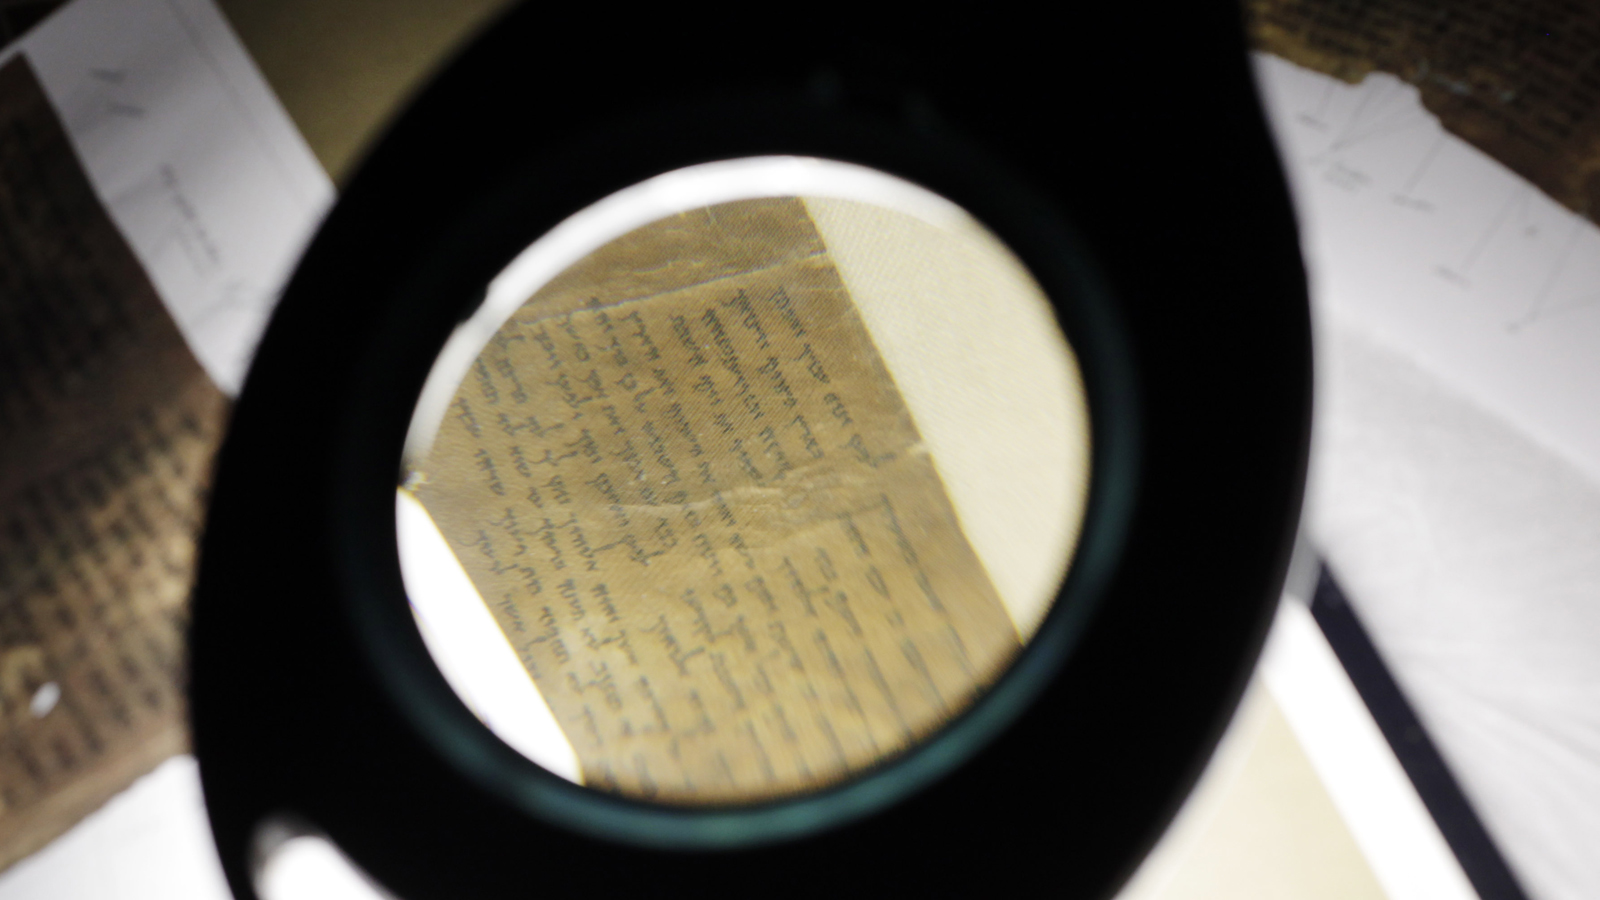 Conservators examine a portion of the Dead Sea Scrolls containing the Ten Commandments before the scrolls' installation at Discovery Times Square in New York, Thursday, Dec. 15, 2011. (AP Photo/Seth Wenig)